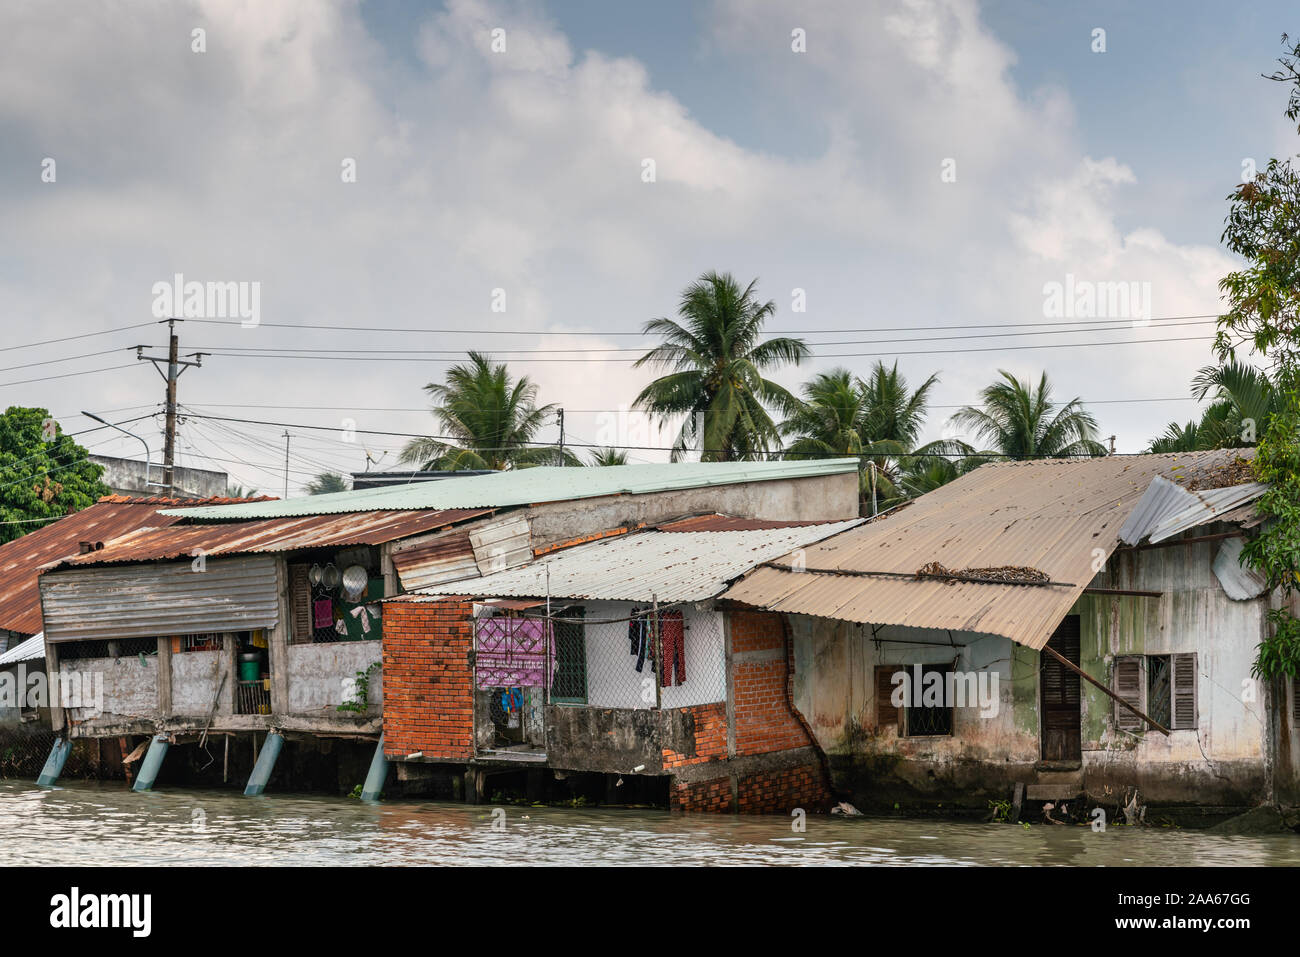 Cai Be, Mekong Delta, Vietnam - March 13, 2019: Along Kinh 28 canal. Row of slum-like poor houses built on stilts and on shore with corrugated roof pl Stock Photo